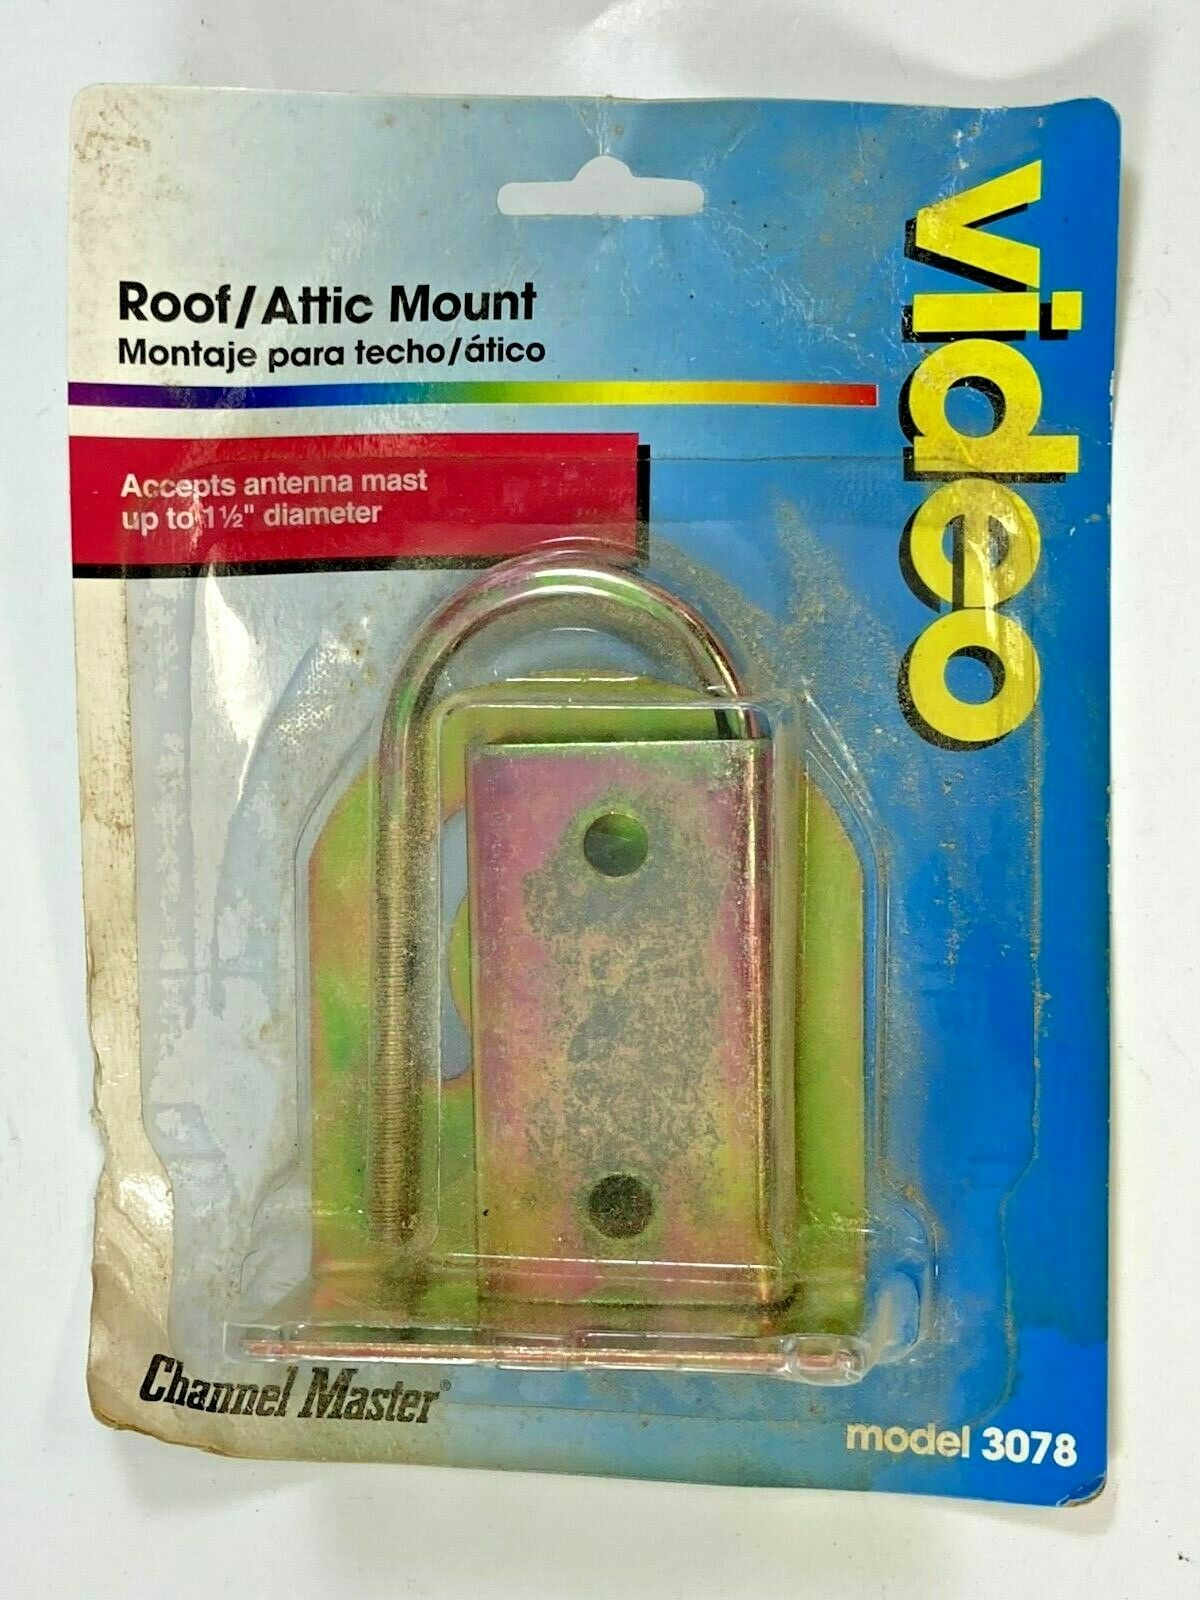 Channel Master Universal Antenna Mount for Roof or Attic Holds Mast Pole 3078. Available Now for 4.95